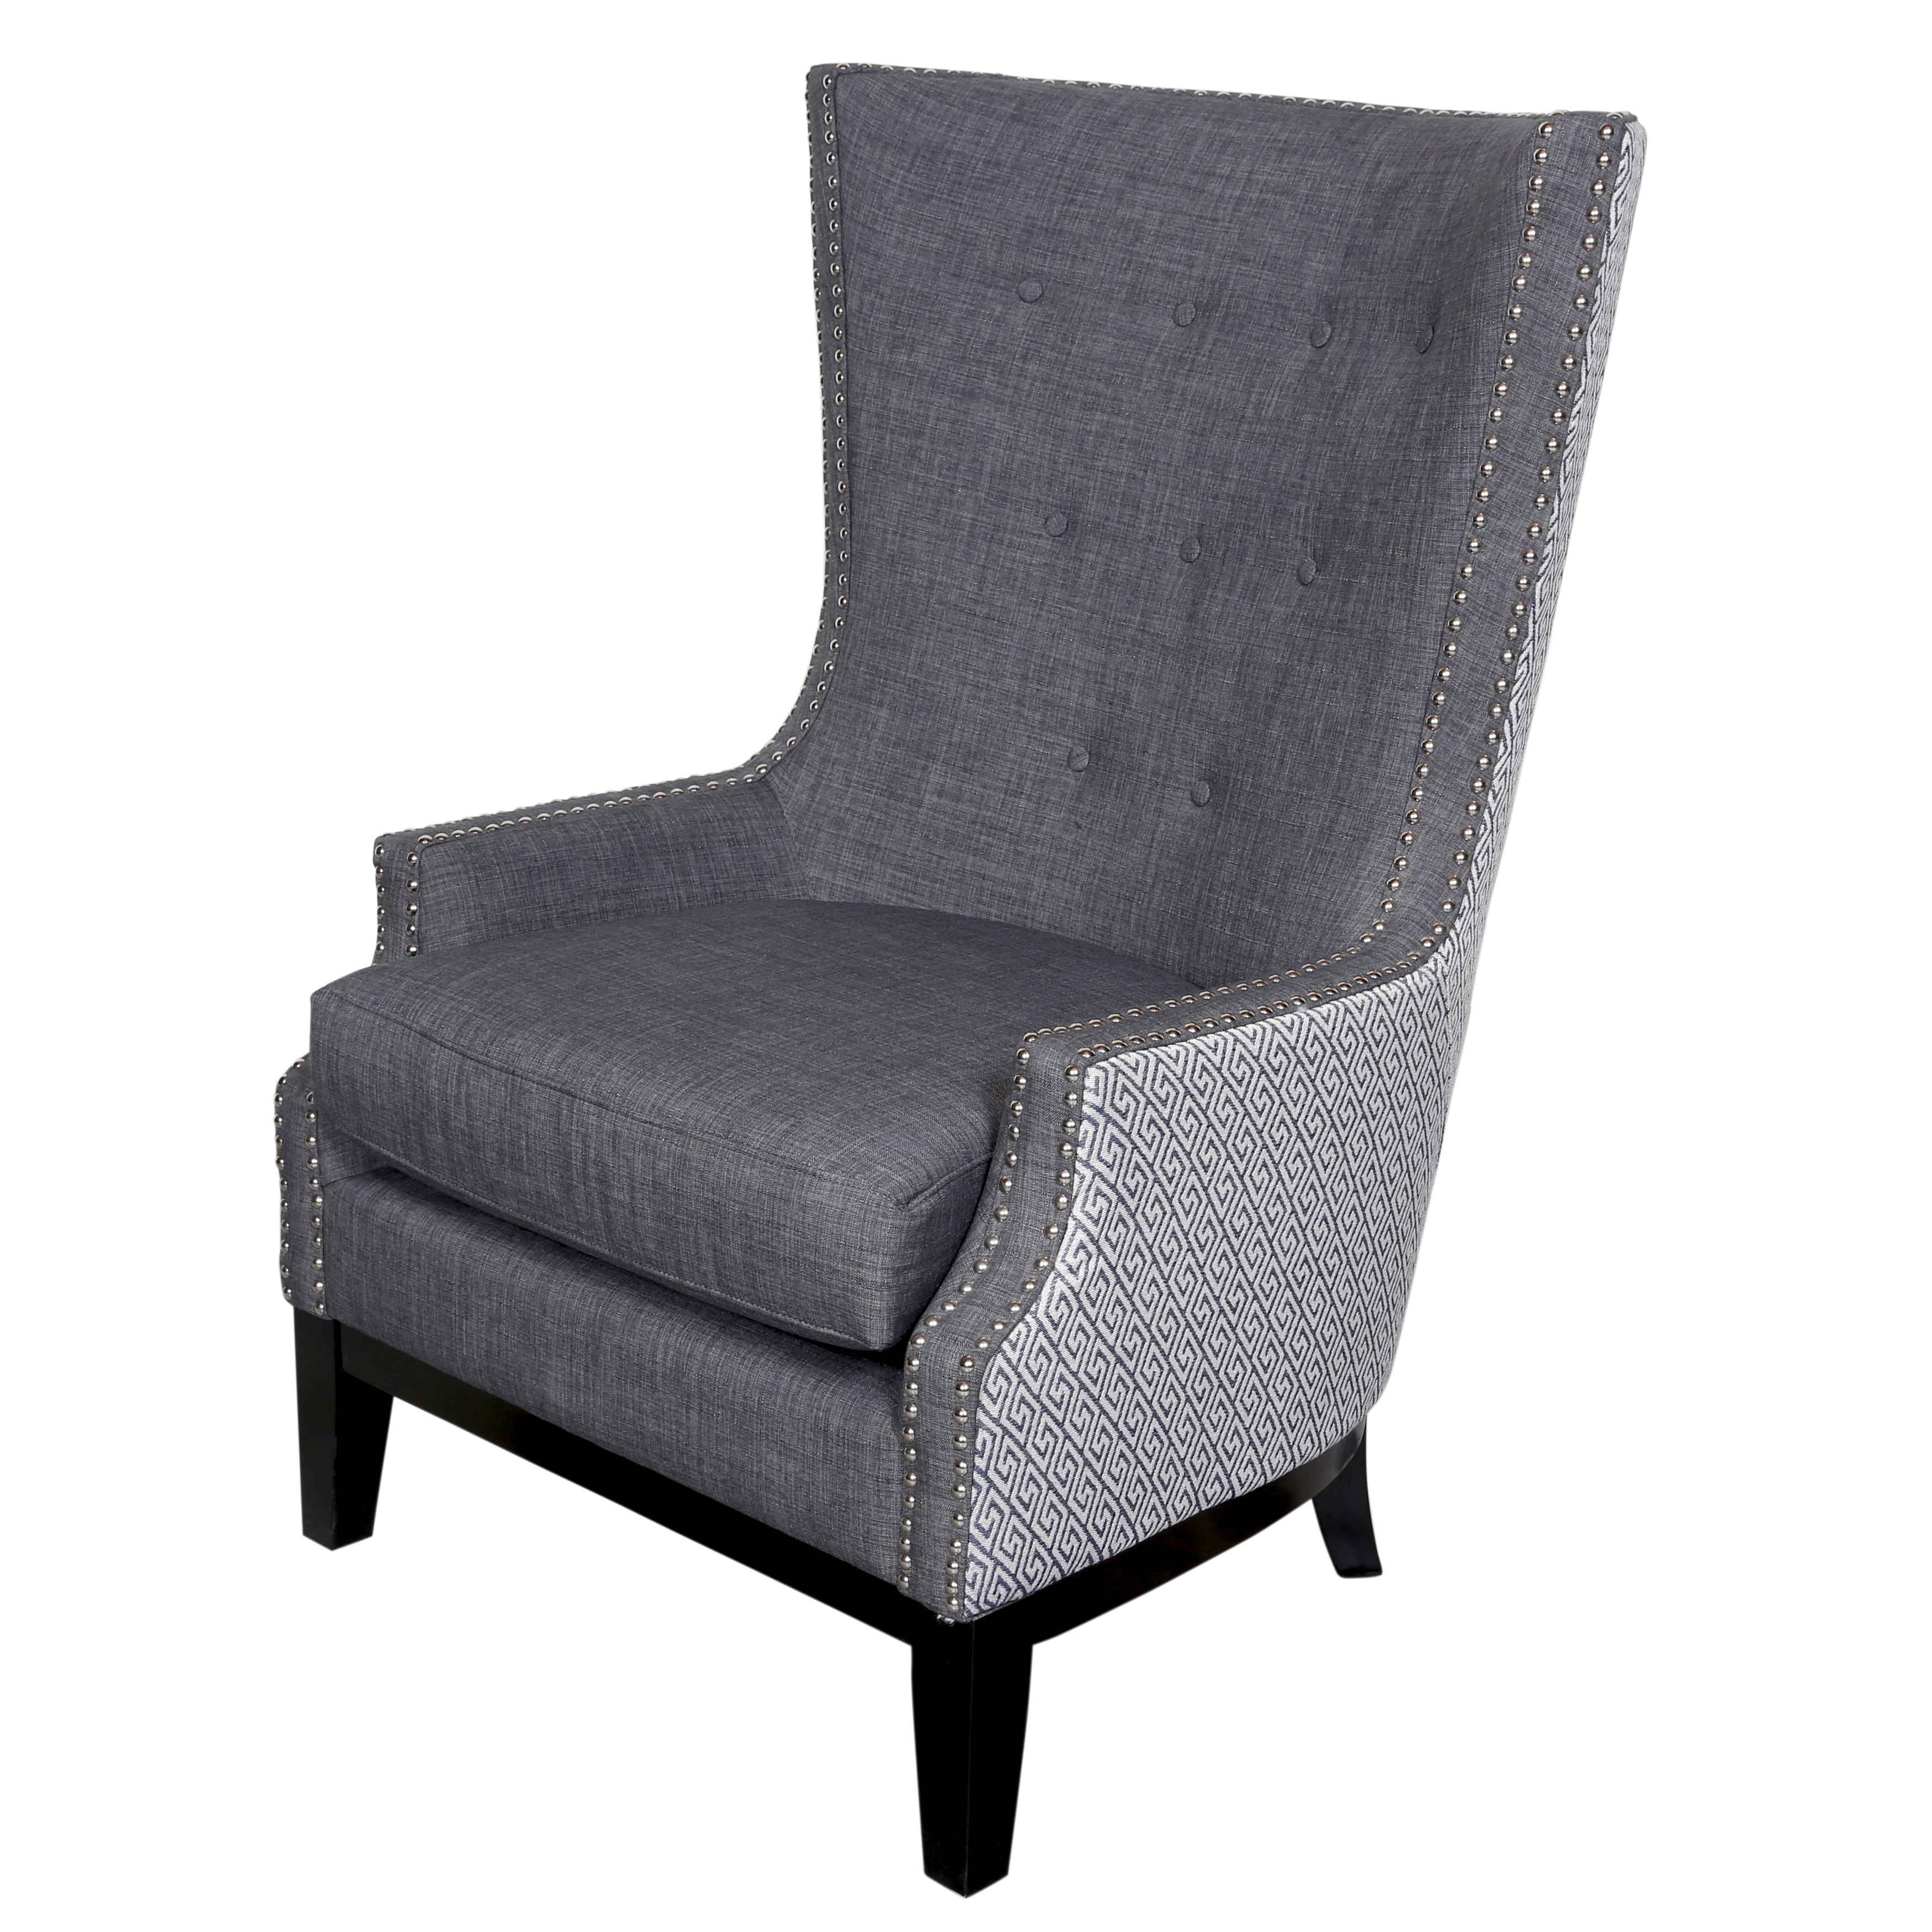 Shop Handmade Draper Lilian Tufted High Wing Back Chair 43 X 27 X 31 India 43 H X 27 D X 31 W Overstock 11780886